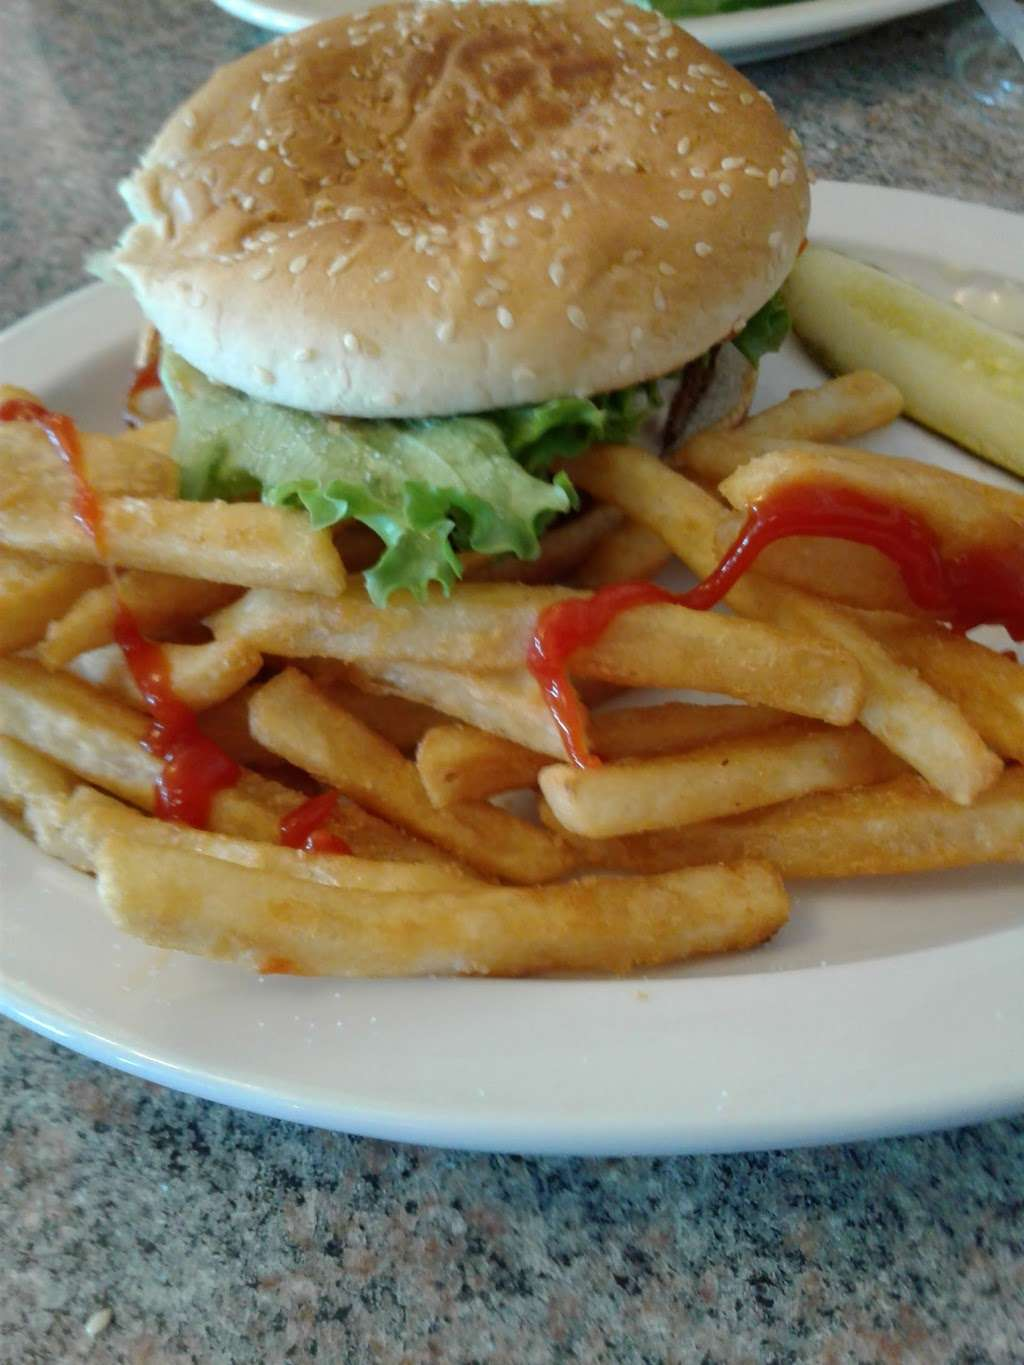 Columbia Diner - restaurant  | Photo 9 of 9 | Address: 1725 Columbia Ave, Lancaster, PA 17603, USA | Phone: (717) 392-8371